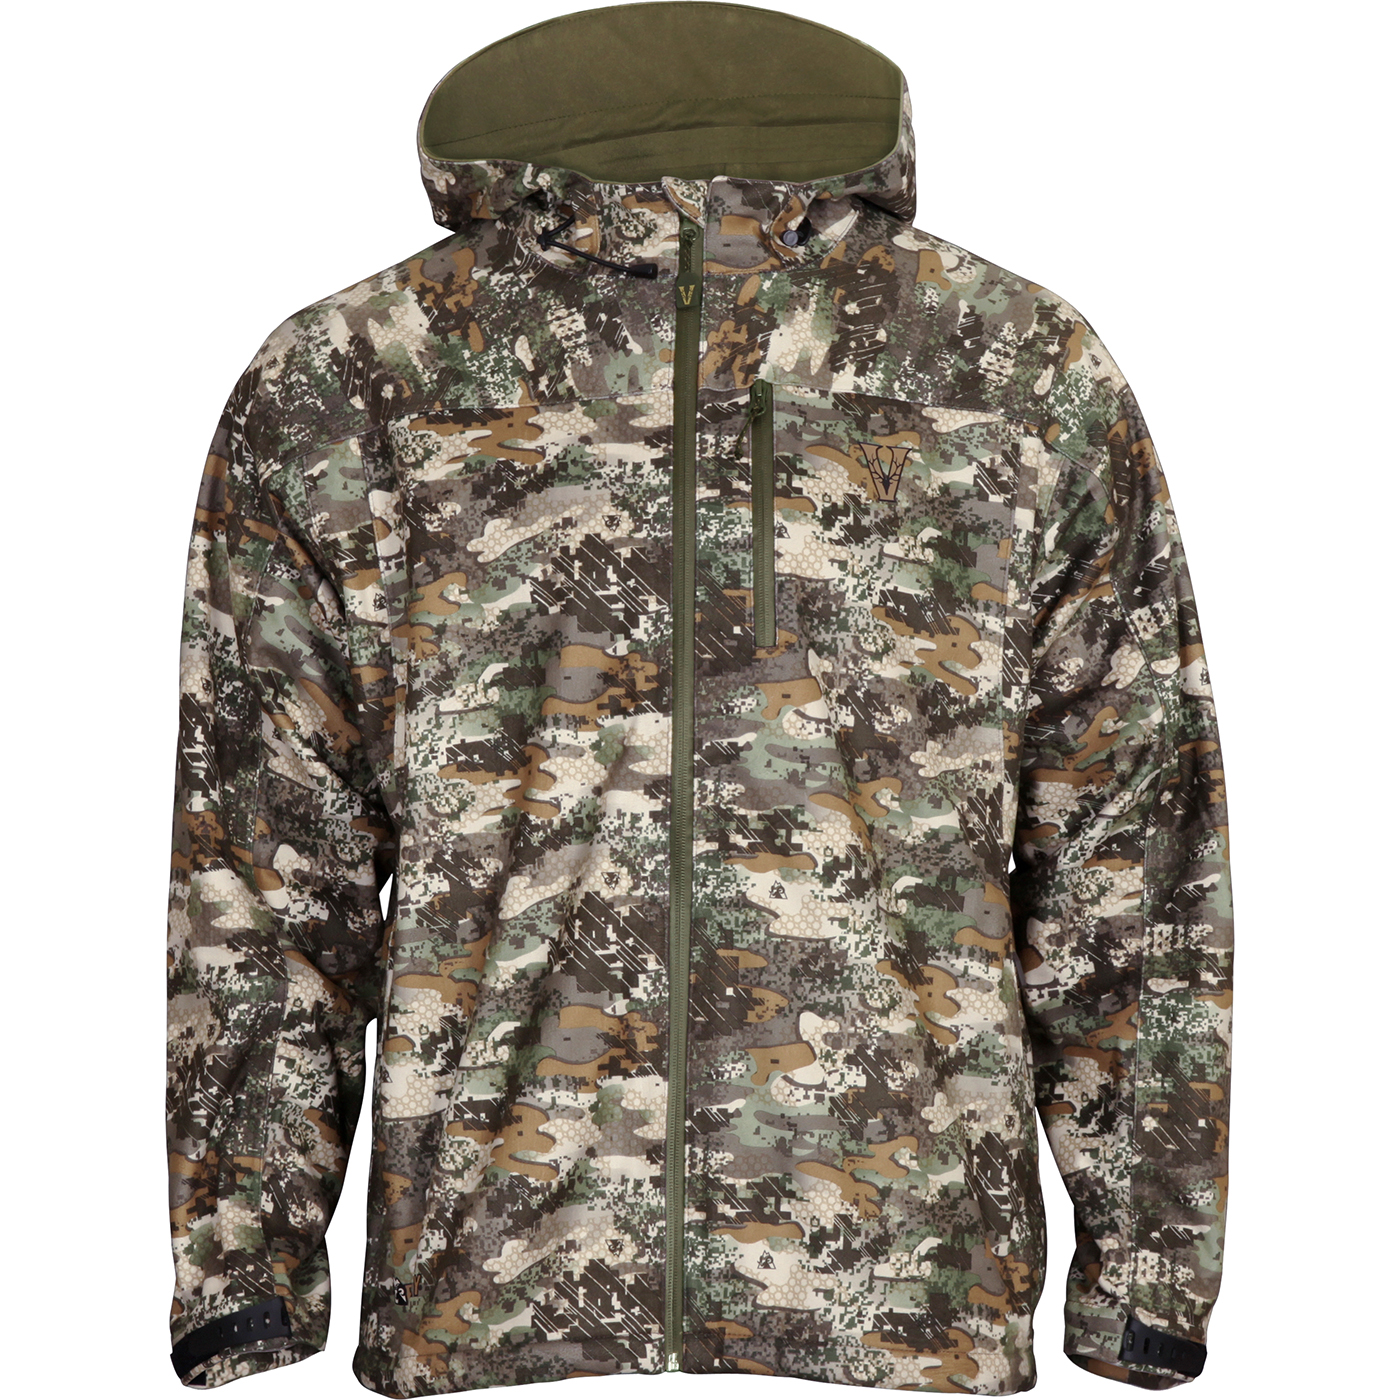 Insulated jackets temperature